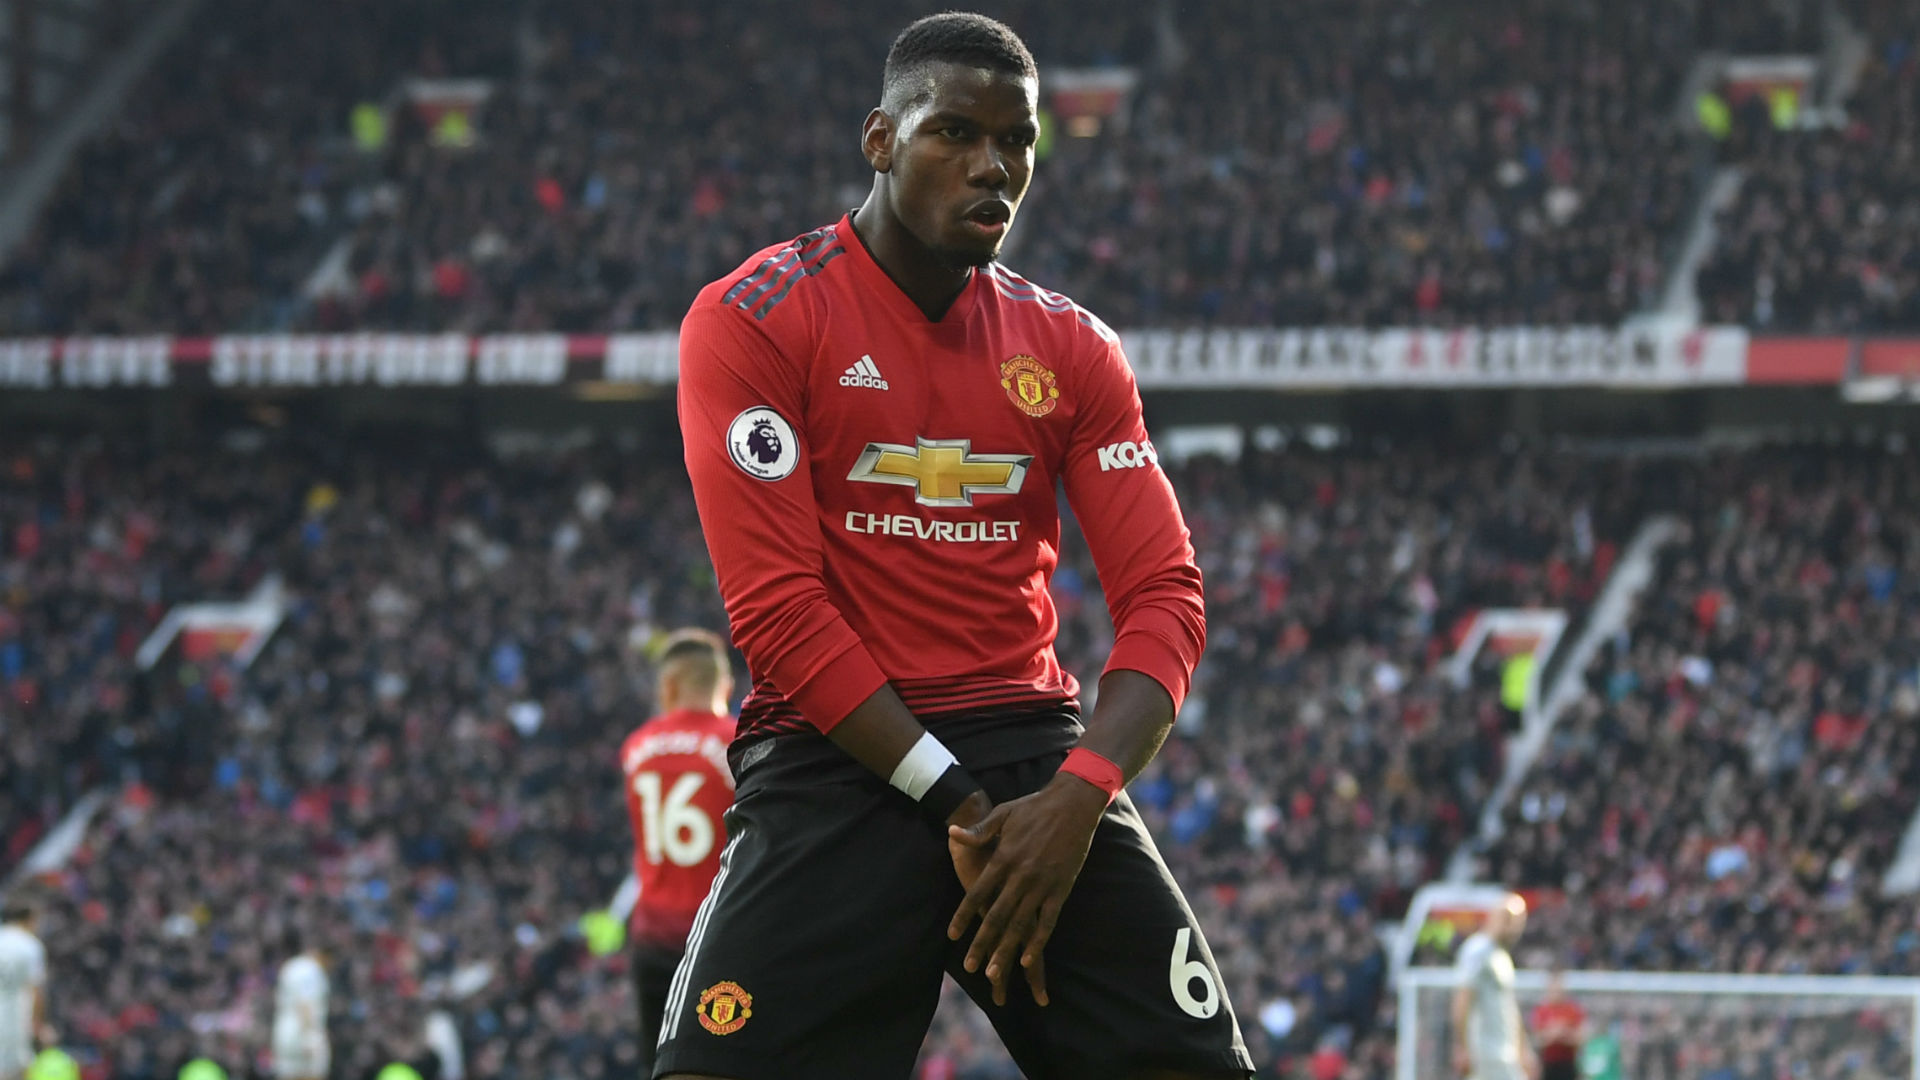 PFA Premier League Team of the Year: Is Pogba worthy of a place?